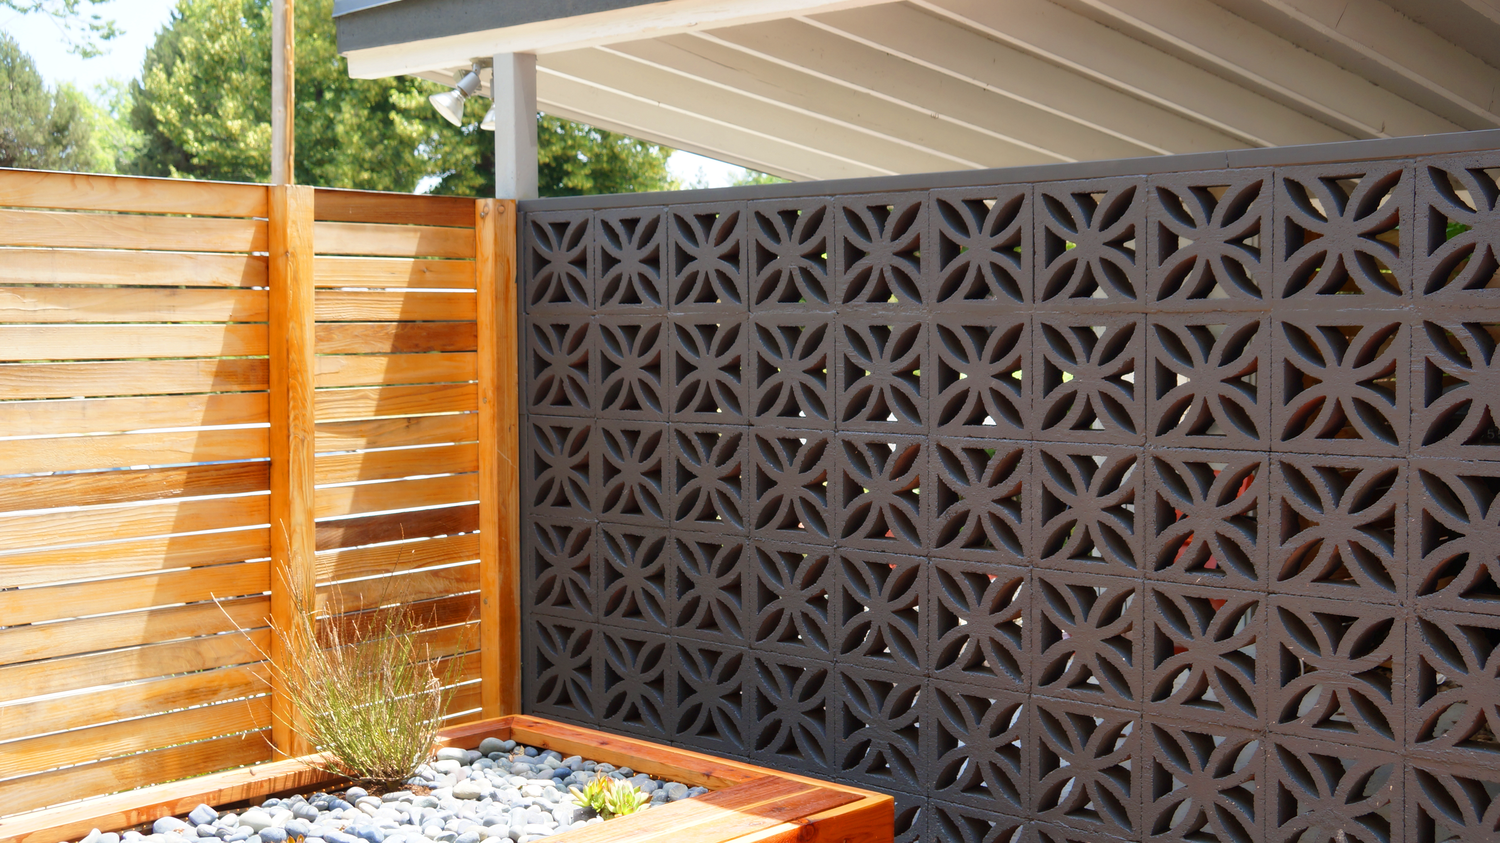 Gallery Modern Landscaping Decorative Concrete Blocks Fence Design